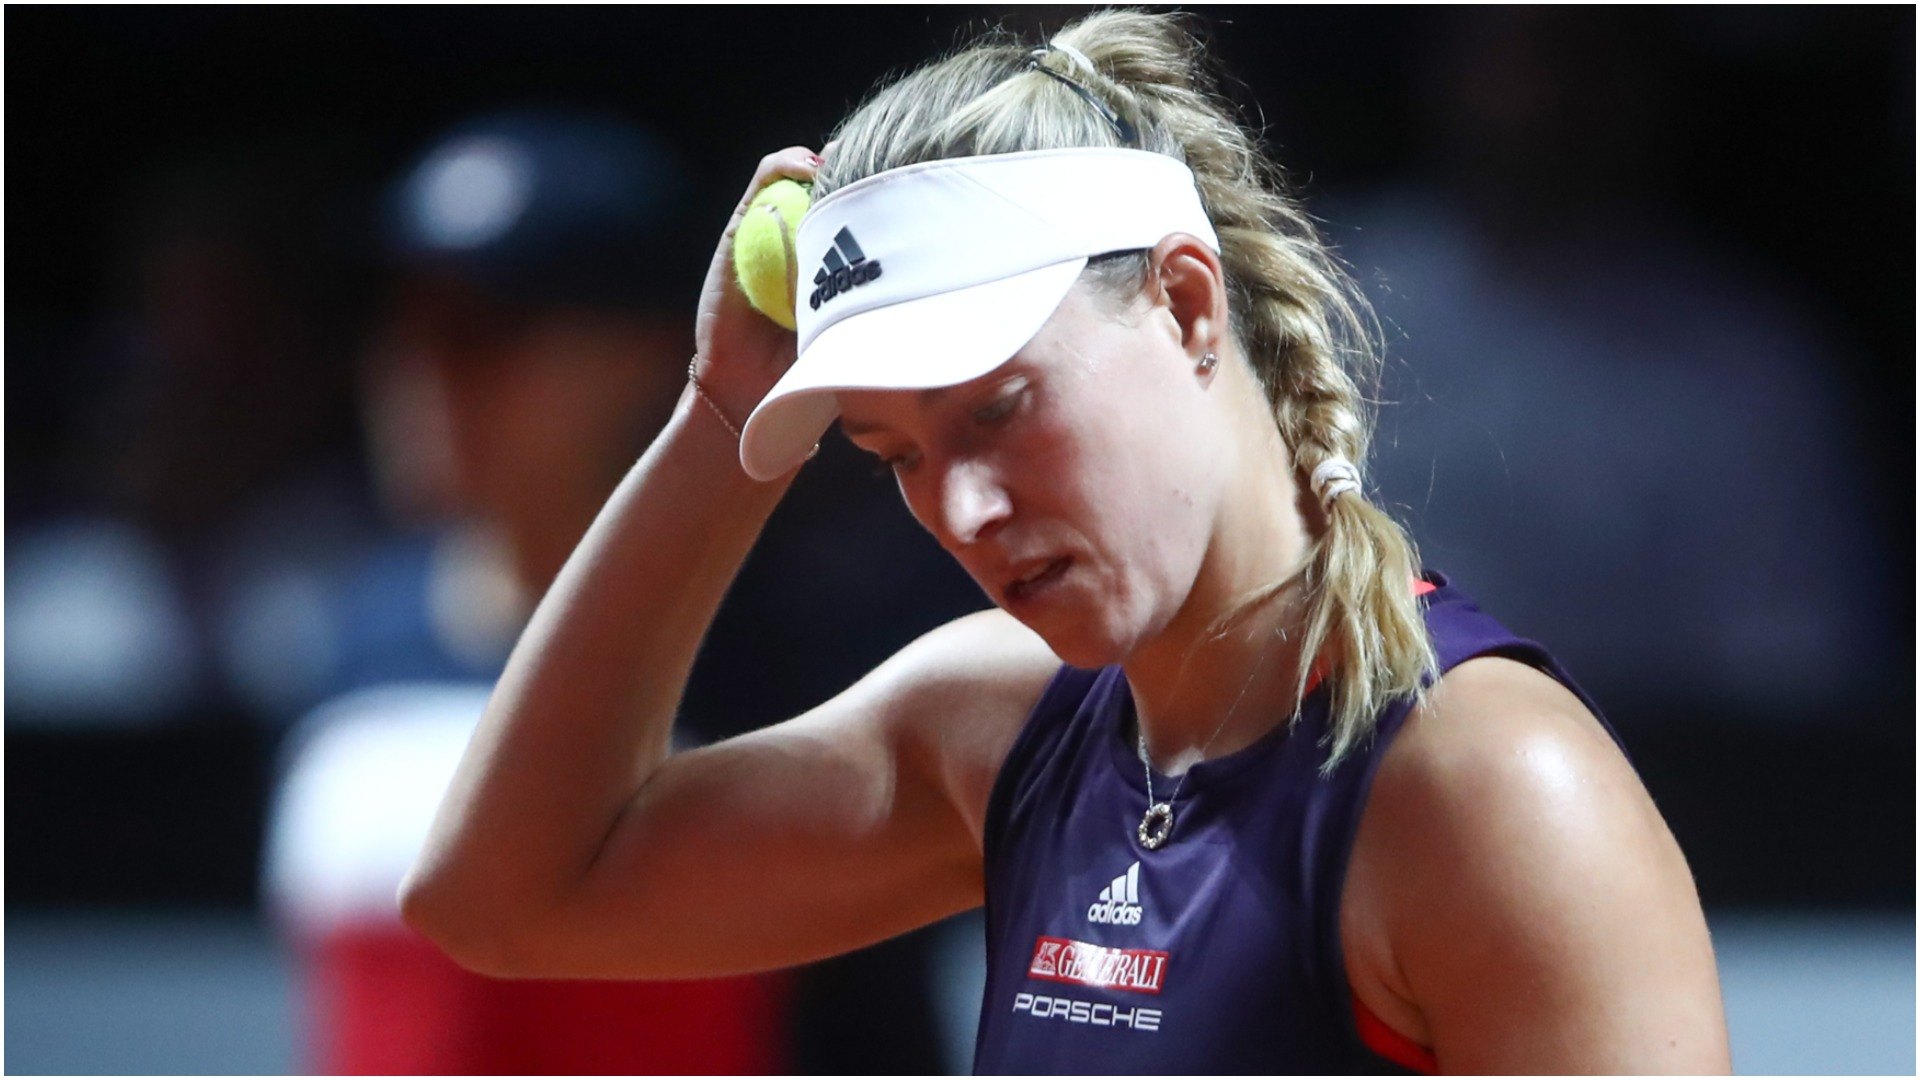 Kerber stunned by teenager Potapova in Roland Garros opener